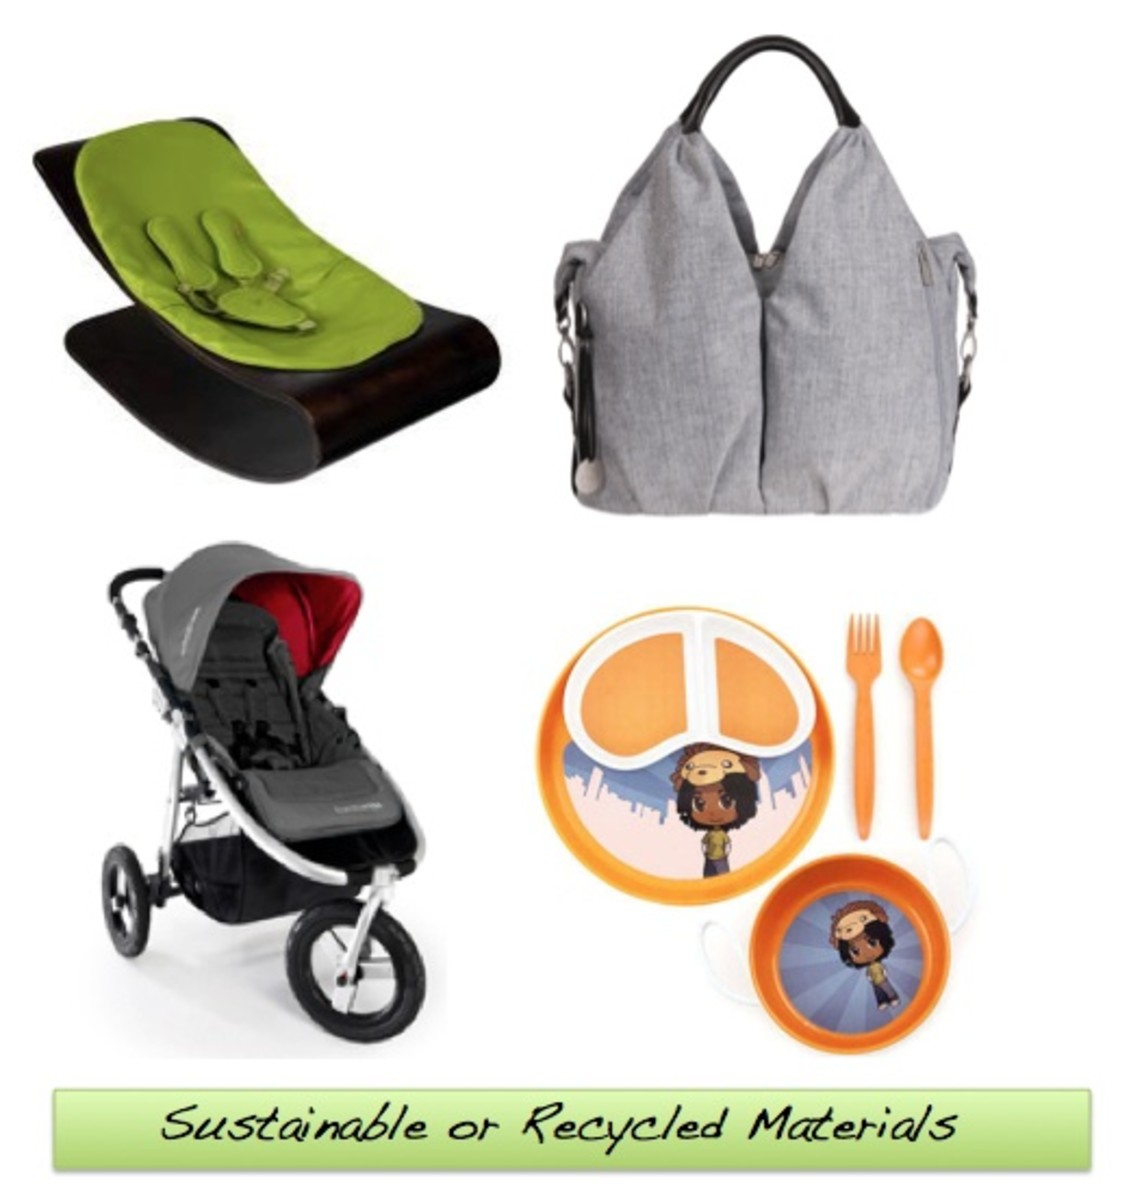 sustainrecycled